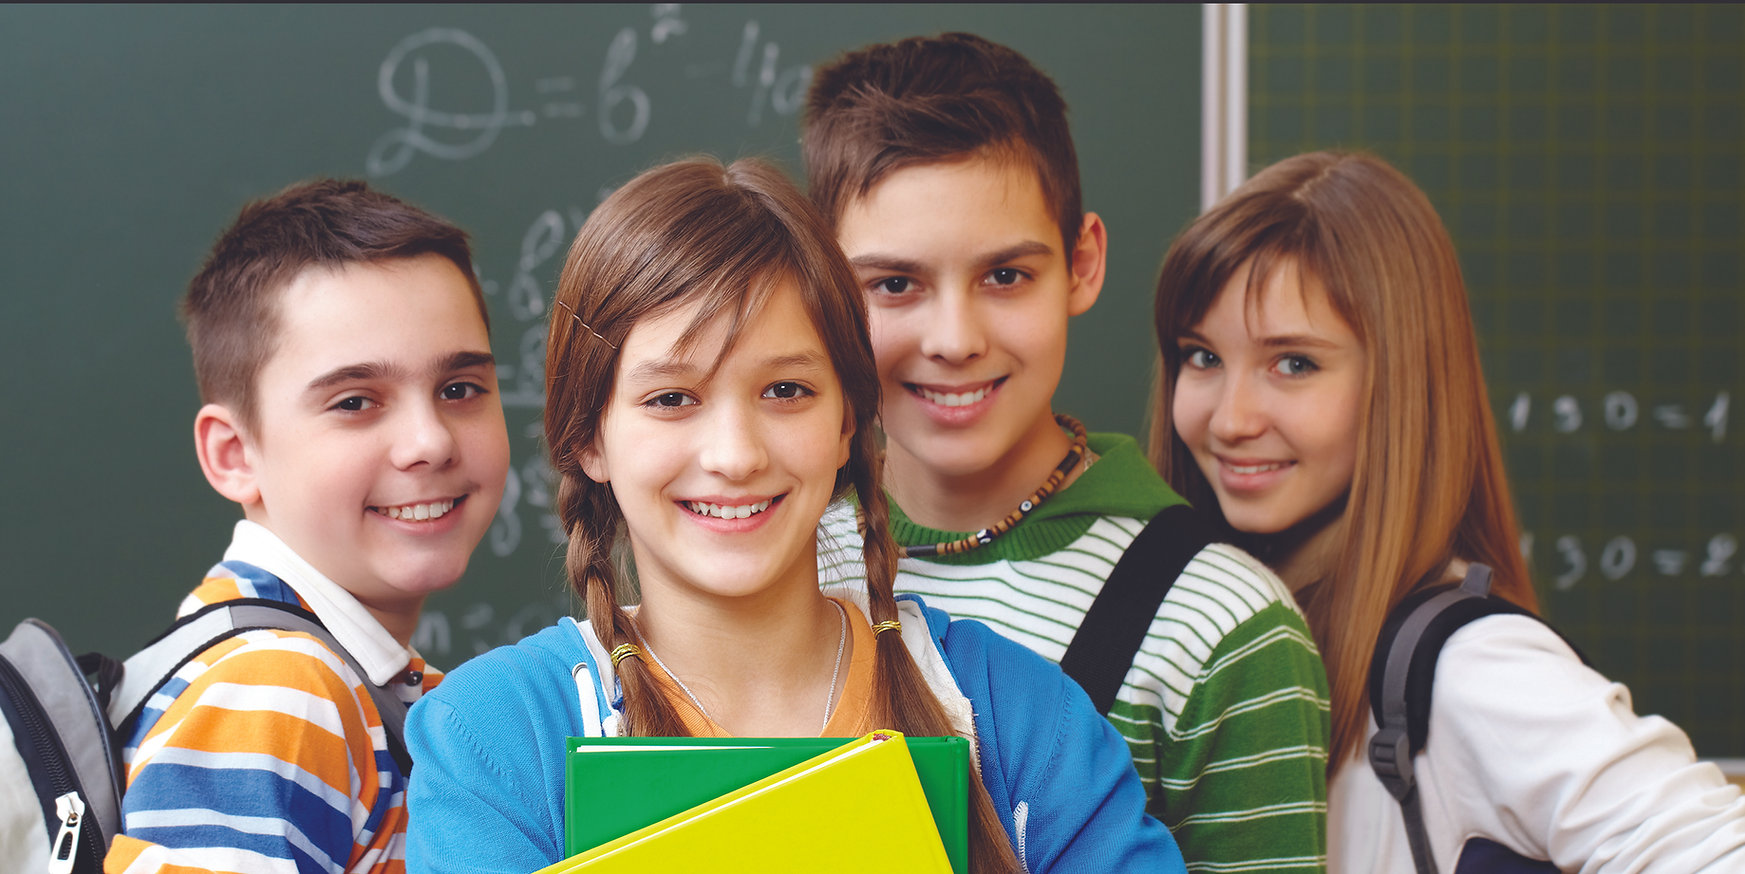 Home page Scolaire.jpg